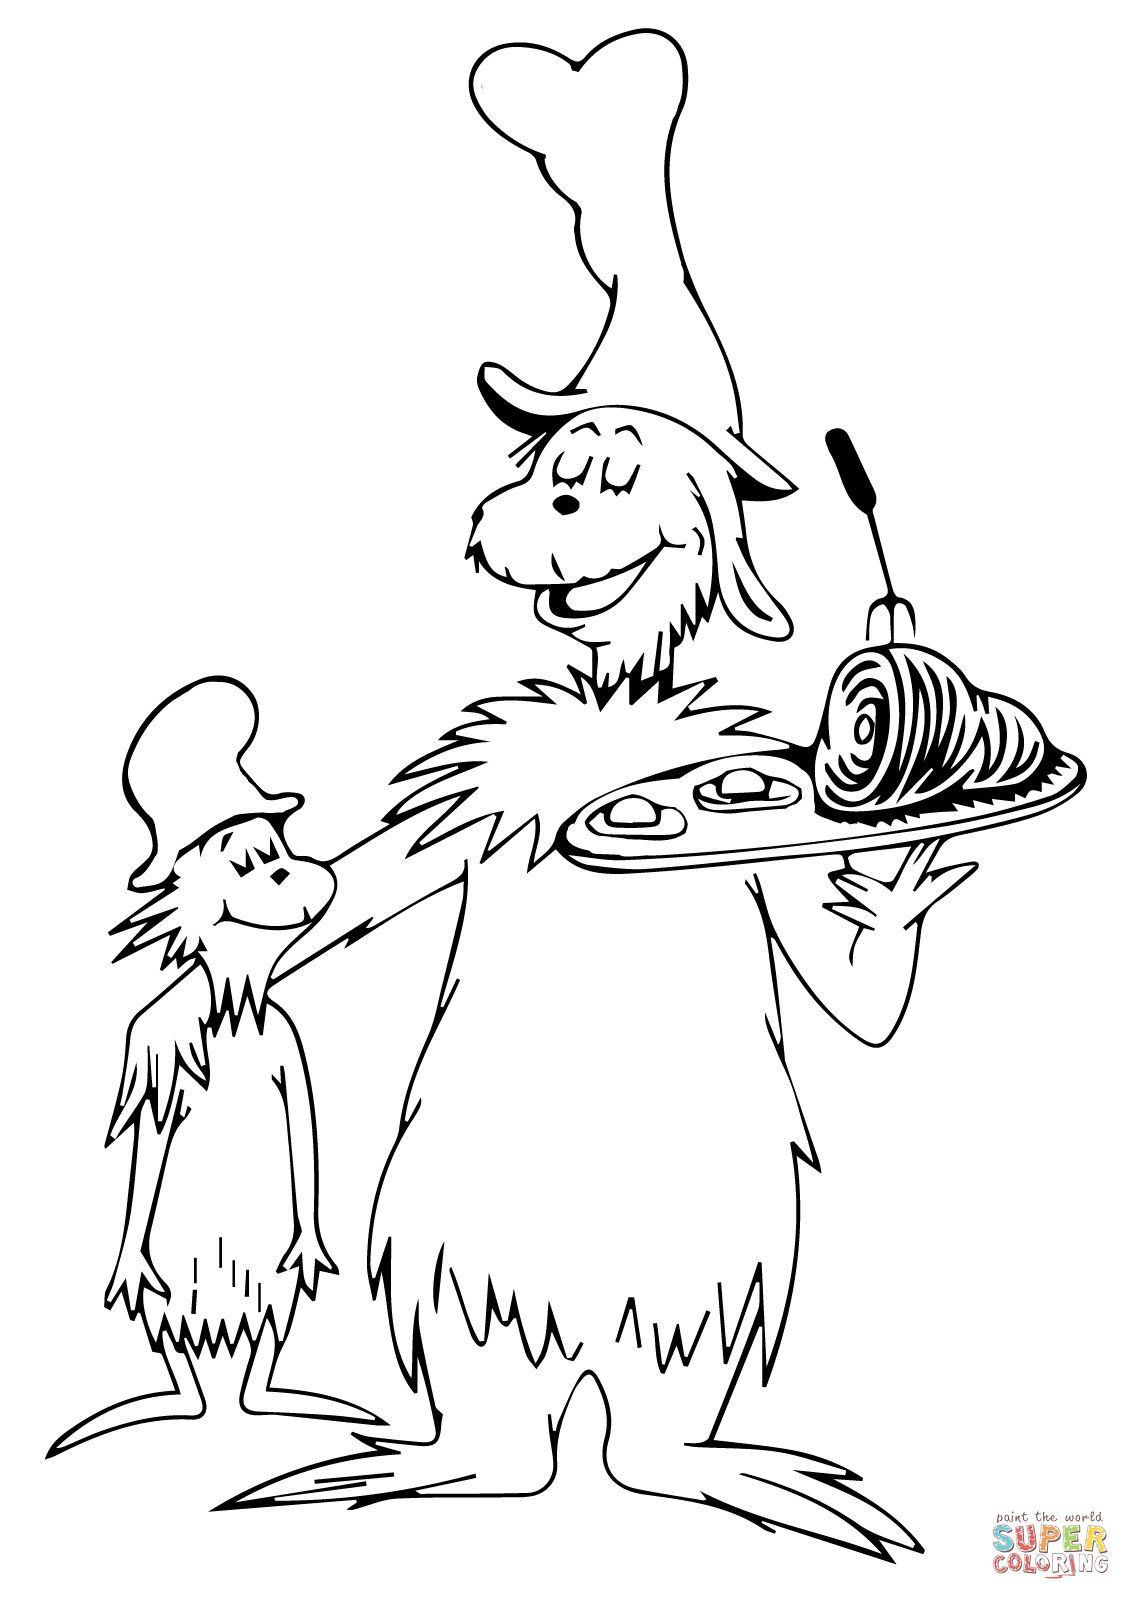 Green Eggs And Ham Coloring Page  Dr seuss coloring sheet, Dr